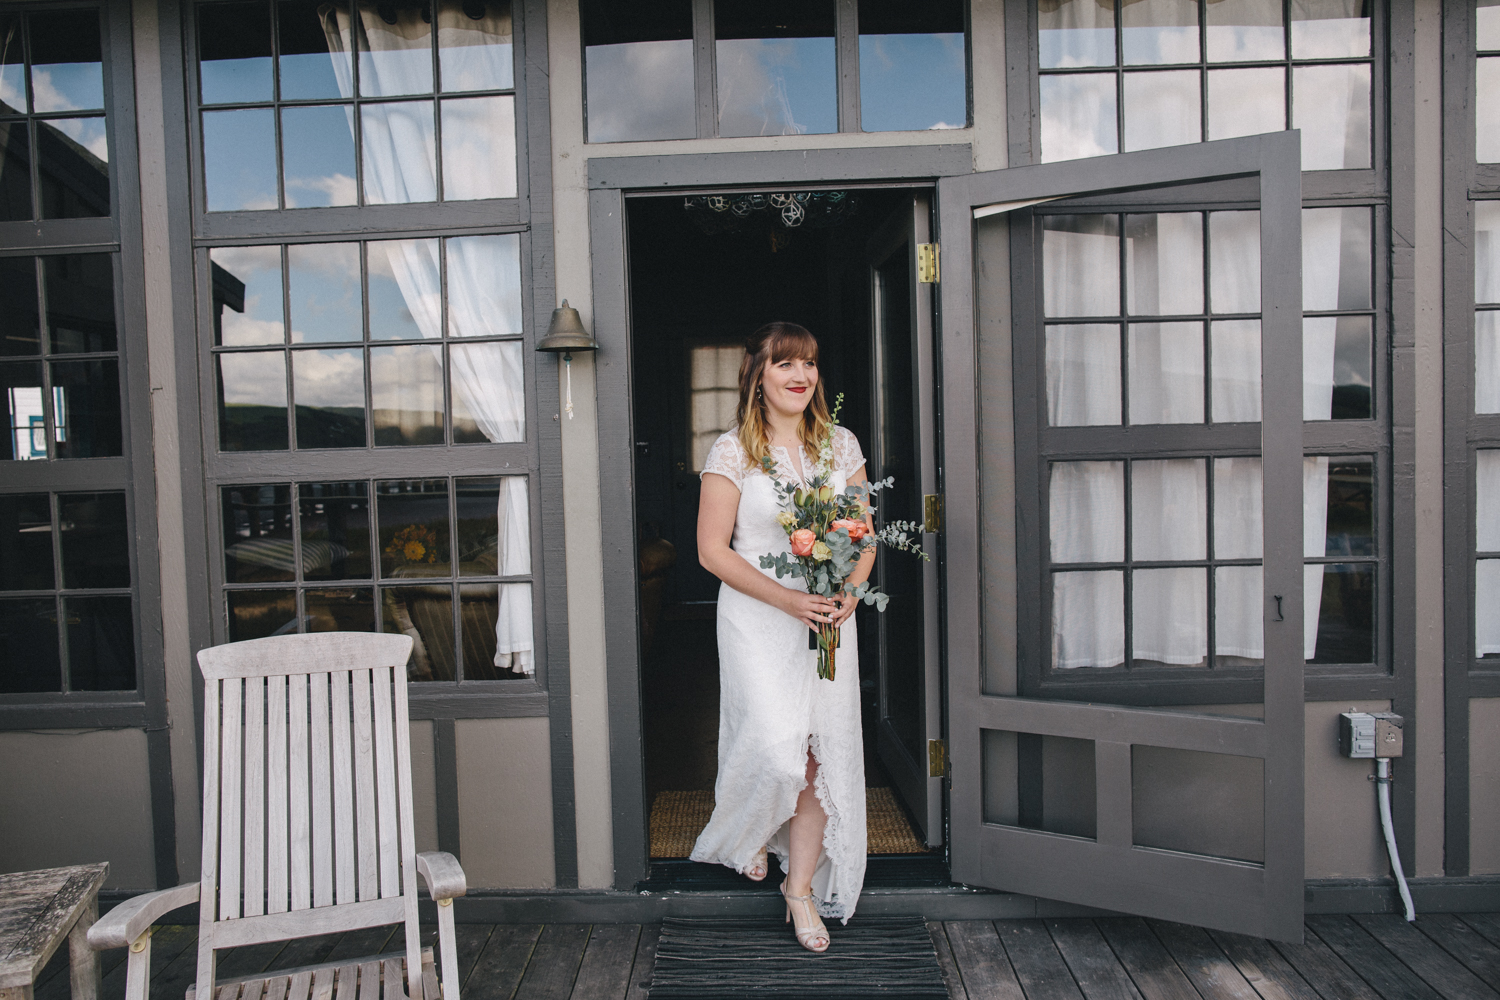 Point Reyes Inverness Wedding Photographer Rachelle Derouin-37.jpg